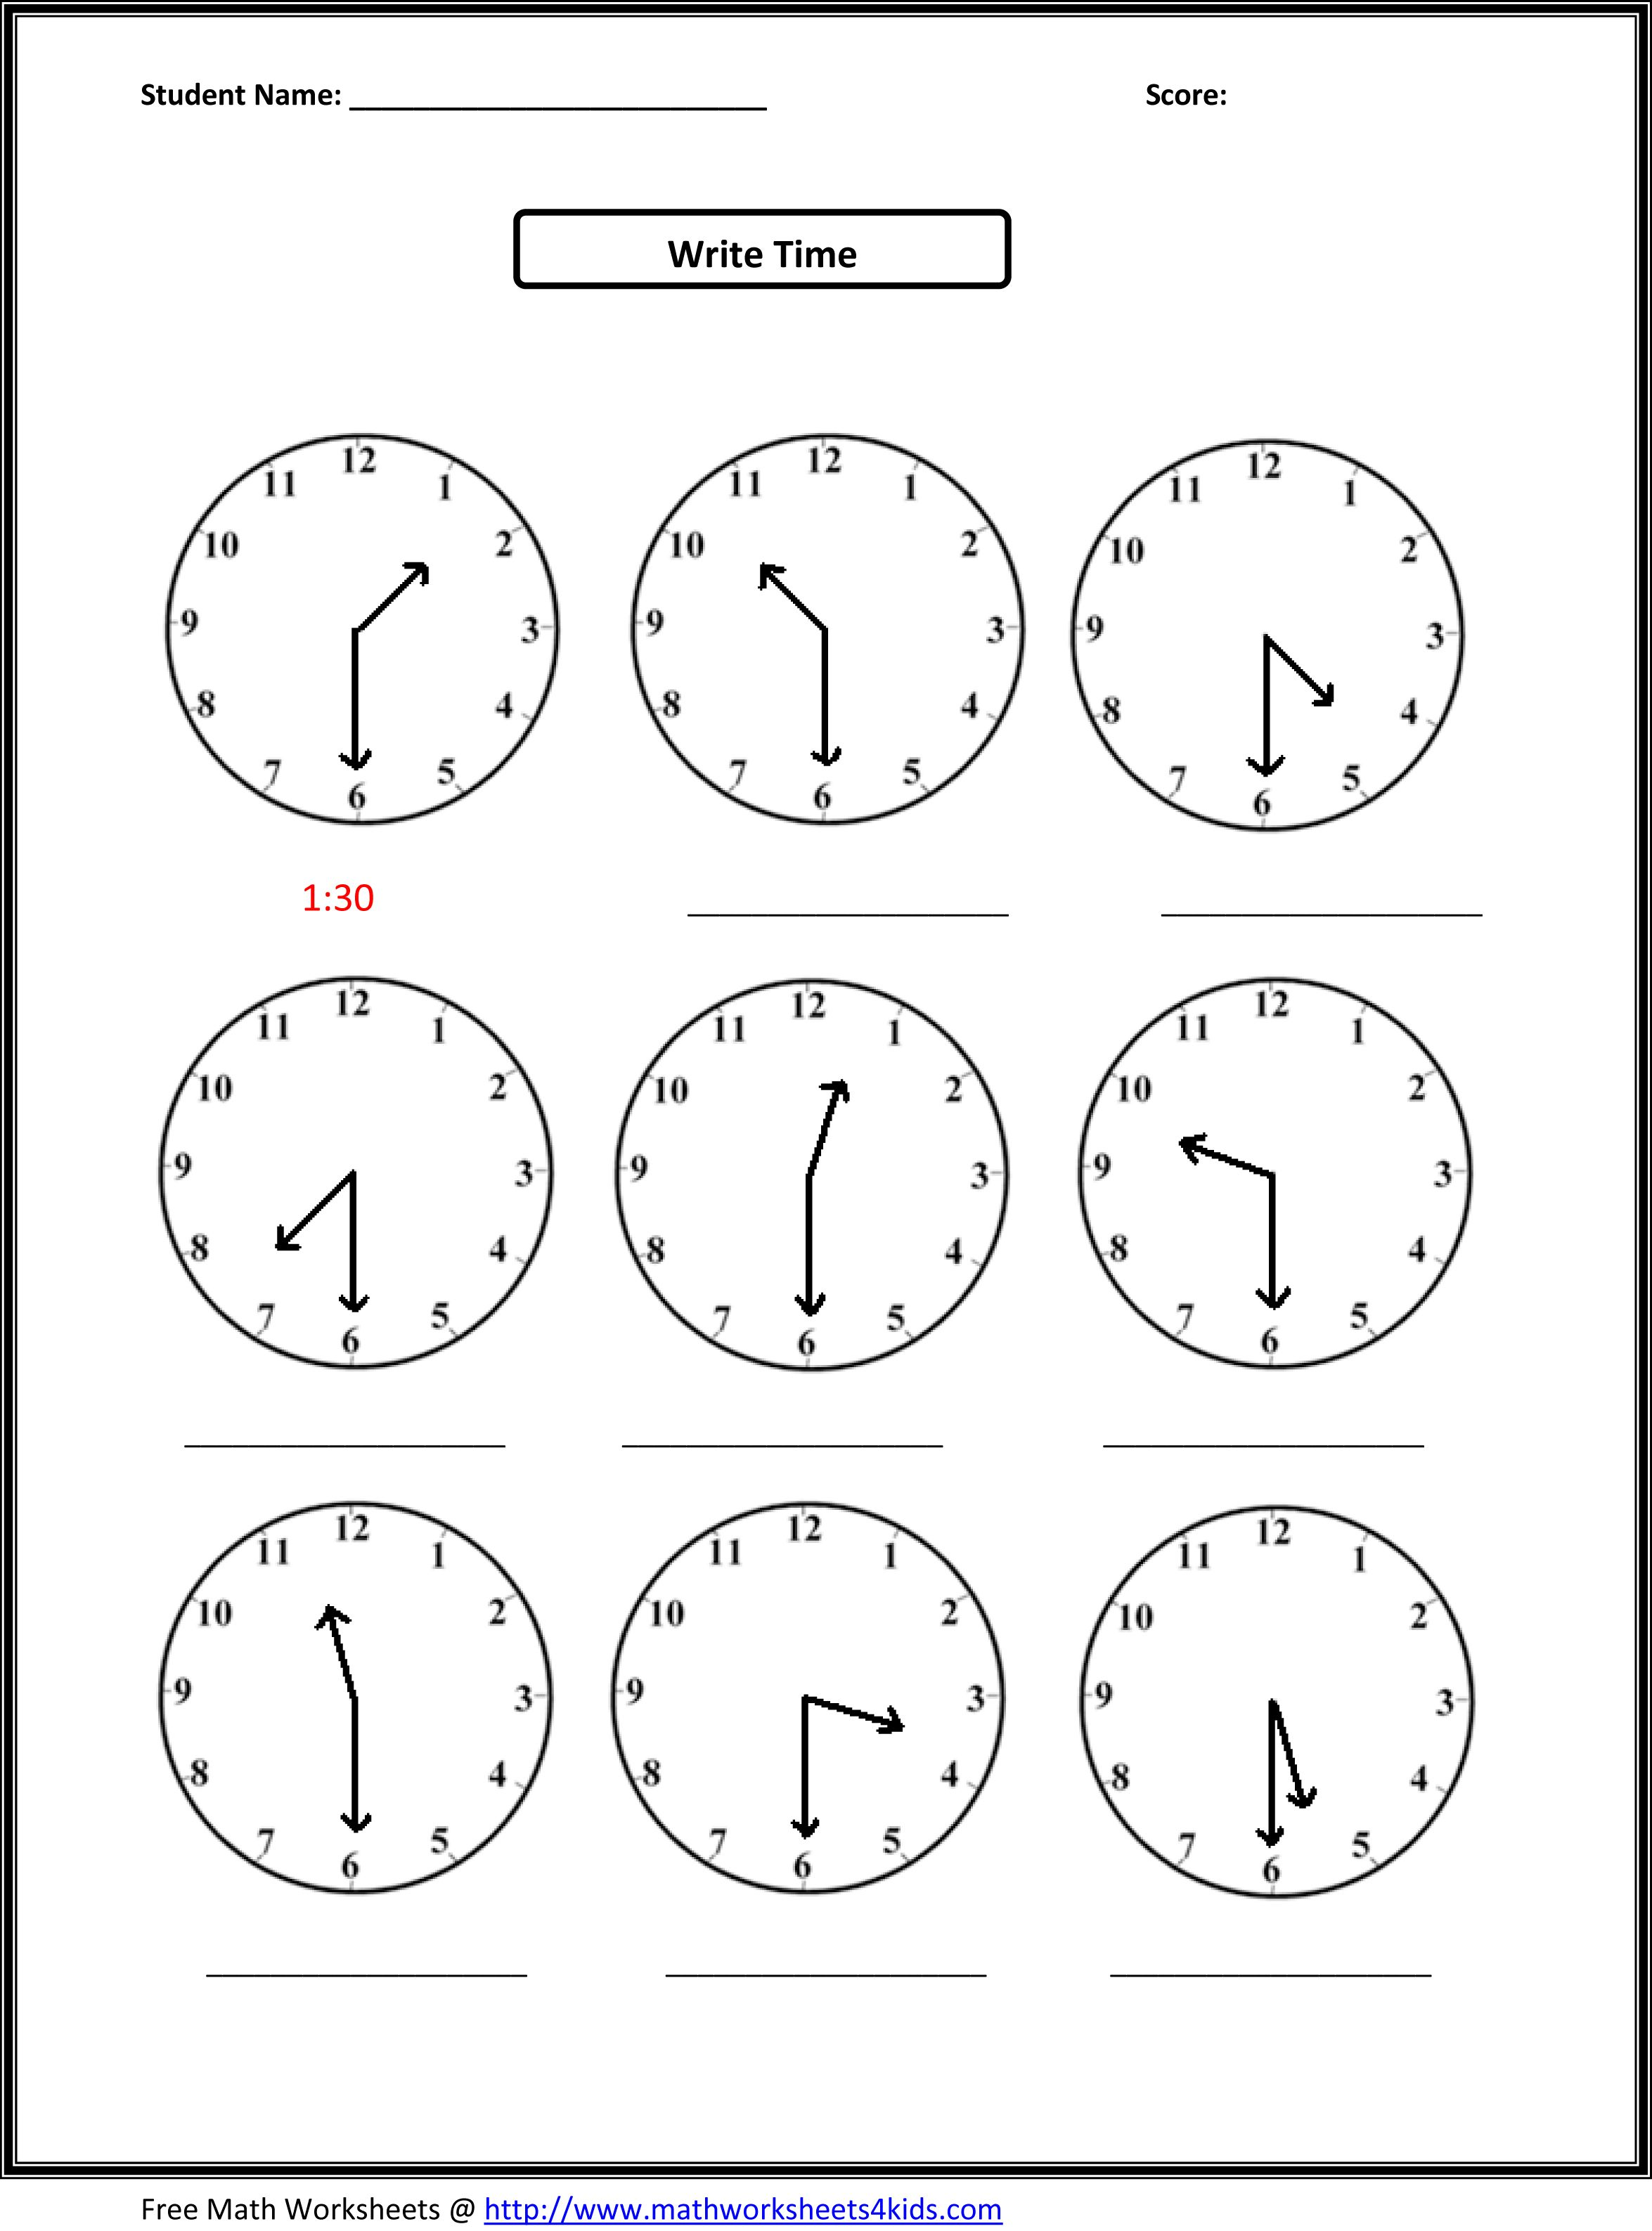 Weirdmailus  Marvelous Worksheet On Time For Grade   Reocurent With Exciting Free Printable Telling Time Worksheets Nd Grade  Reocurent With Extraordinary Free Math Puzzles Worksheets Also Art Worksheets For Middle School Free In Addition Printable Worksheets On Adjectives And Unprotect An Excel Worksheet As Well As Addition Maths Worksheets Additionally A Sound Worksheets From Reocurentcom With Weirdmailus  Exciting Worksheet On Time For Grade   Reocurent With Extraordinary Free Printable Telling Time Worksheets Nd Grade  Reocurent And Marvelous Free Math Puzzles Worksheets Also Art Worksheets For Middle School Free In Addition Printable Worksheets On Adjectives From Reocurentcom